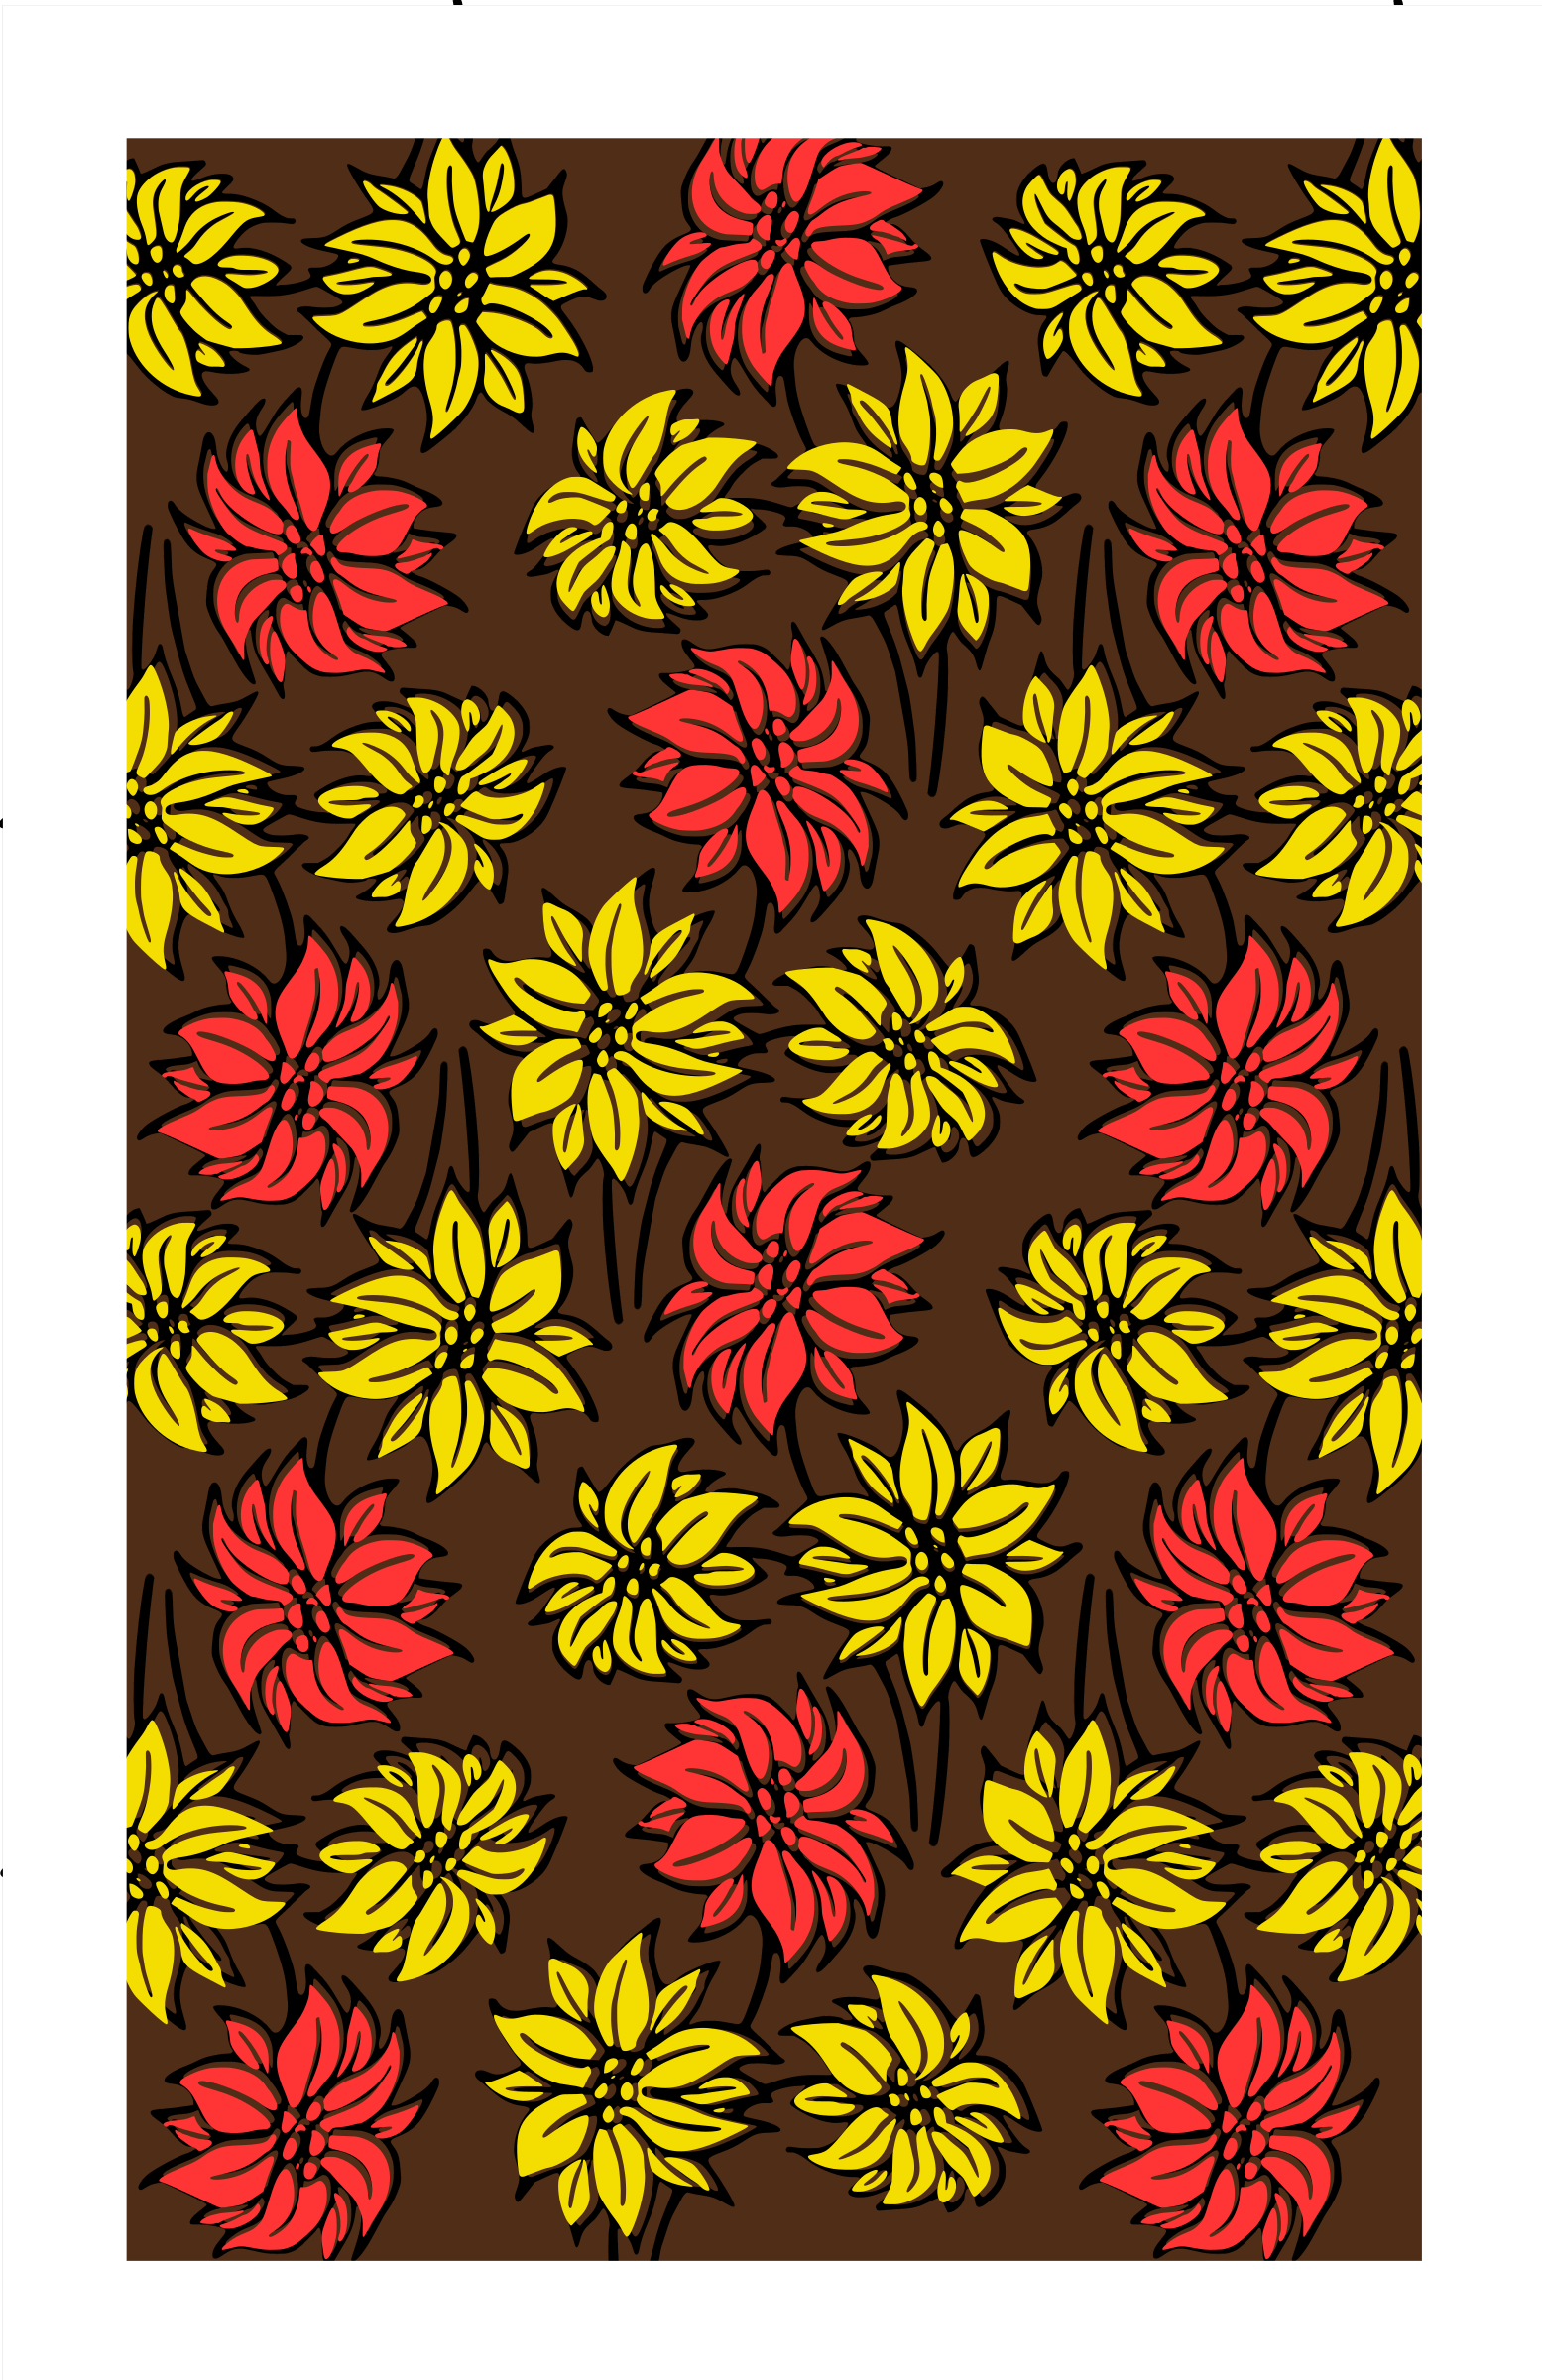 Flower pattern (alternative colour mix) by Firkin